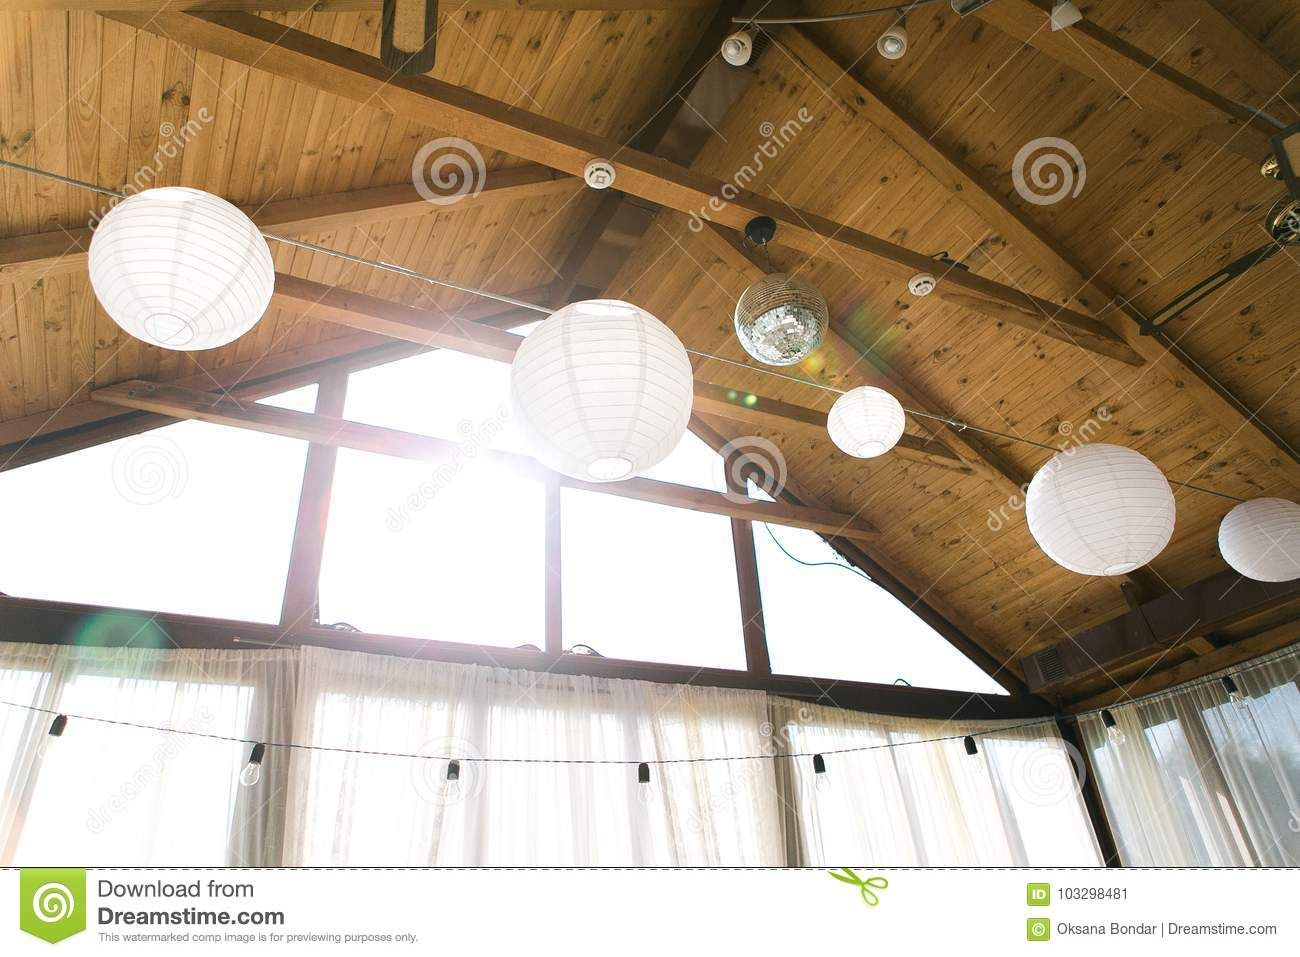 Decorated Tent With Bulb Garland Wedding Setup White Paper Lanterns Inside Of Building Under Wooden Roof Decoration Stock Image Image Of Decorative Lantern 103298481